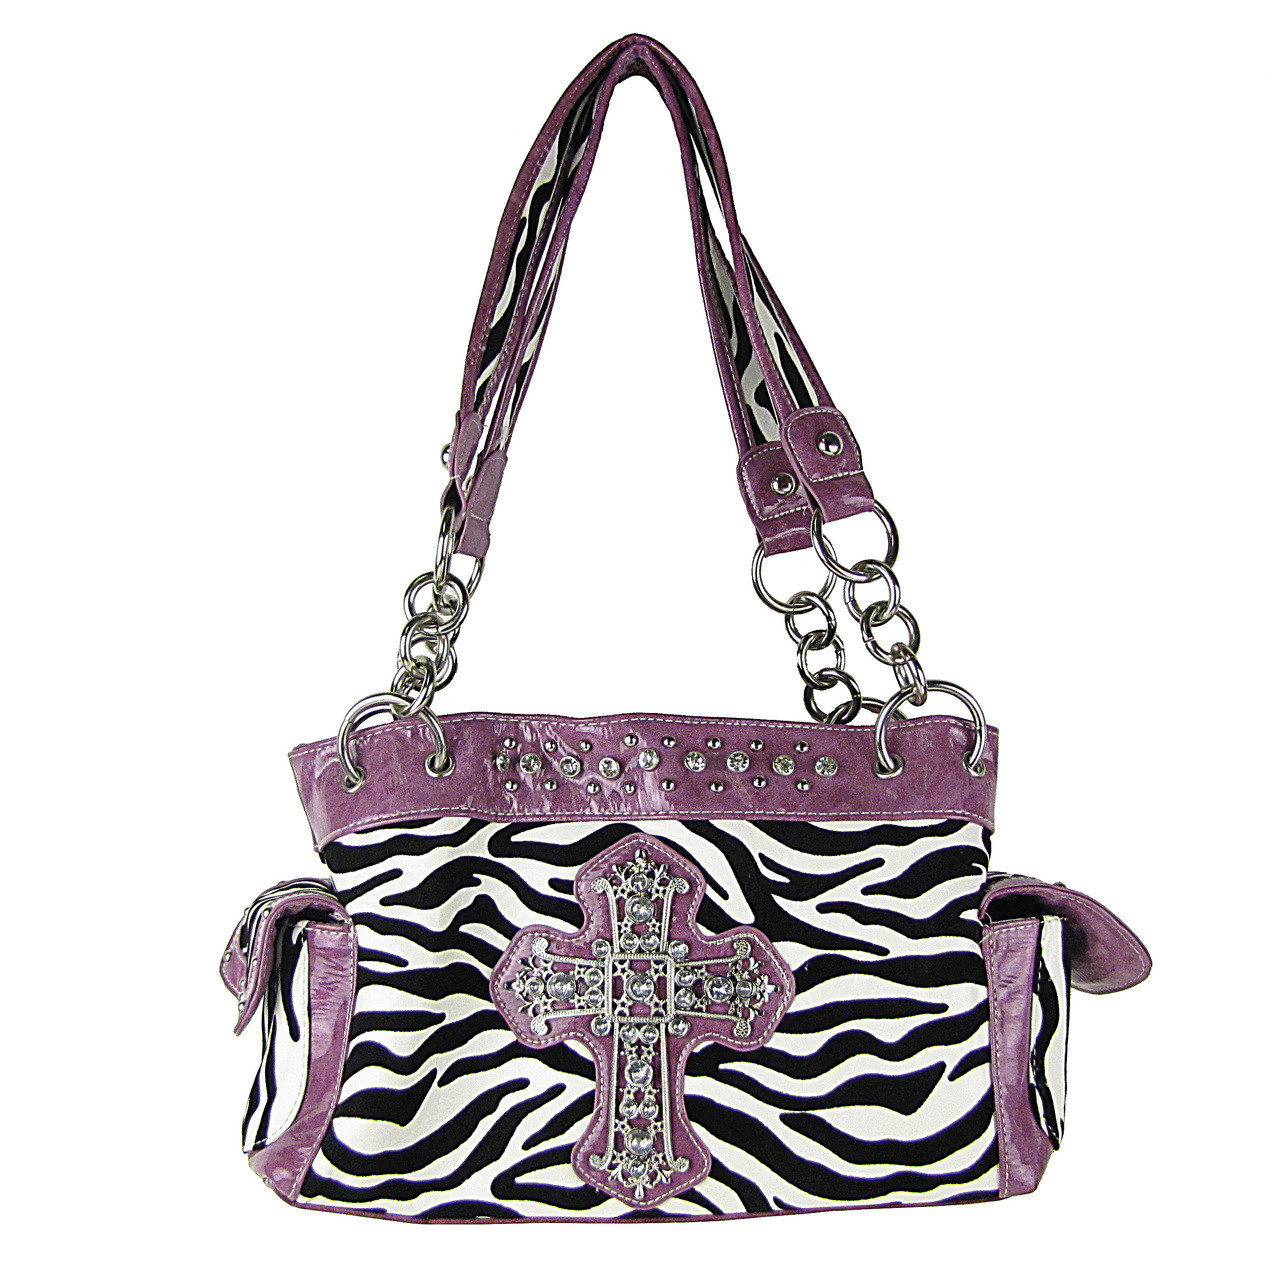 LIGHT PURPLE ZEBRA PRINT CROSS SHOULDER HANDBAG HB1-98001LPL